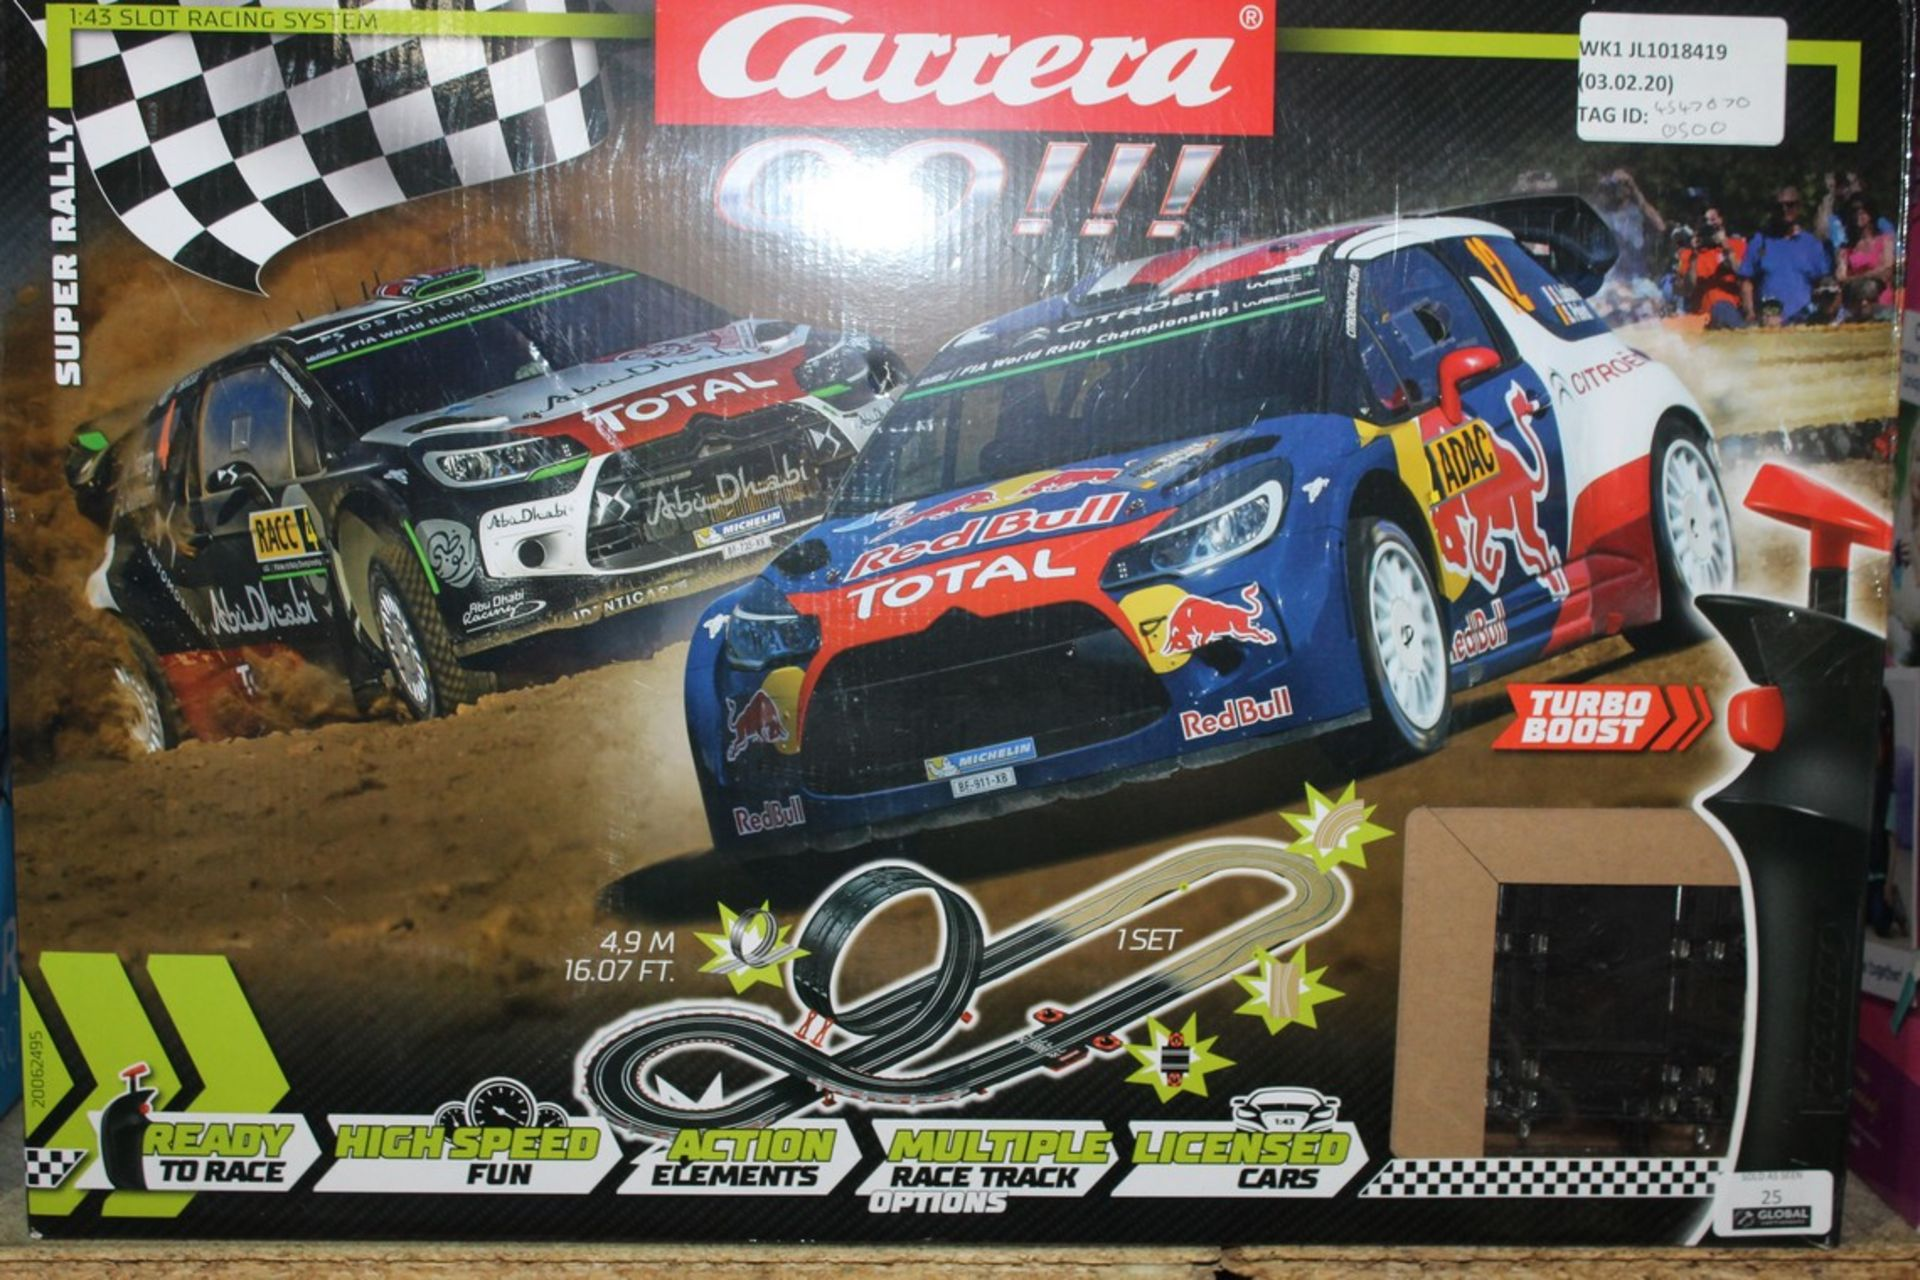 Lot 25 - Boxed Carrera Go, Super Rally Scale Electric Sets, RRP£50.00 EACH 4547070 (4600704) (4390694) (